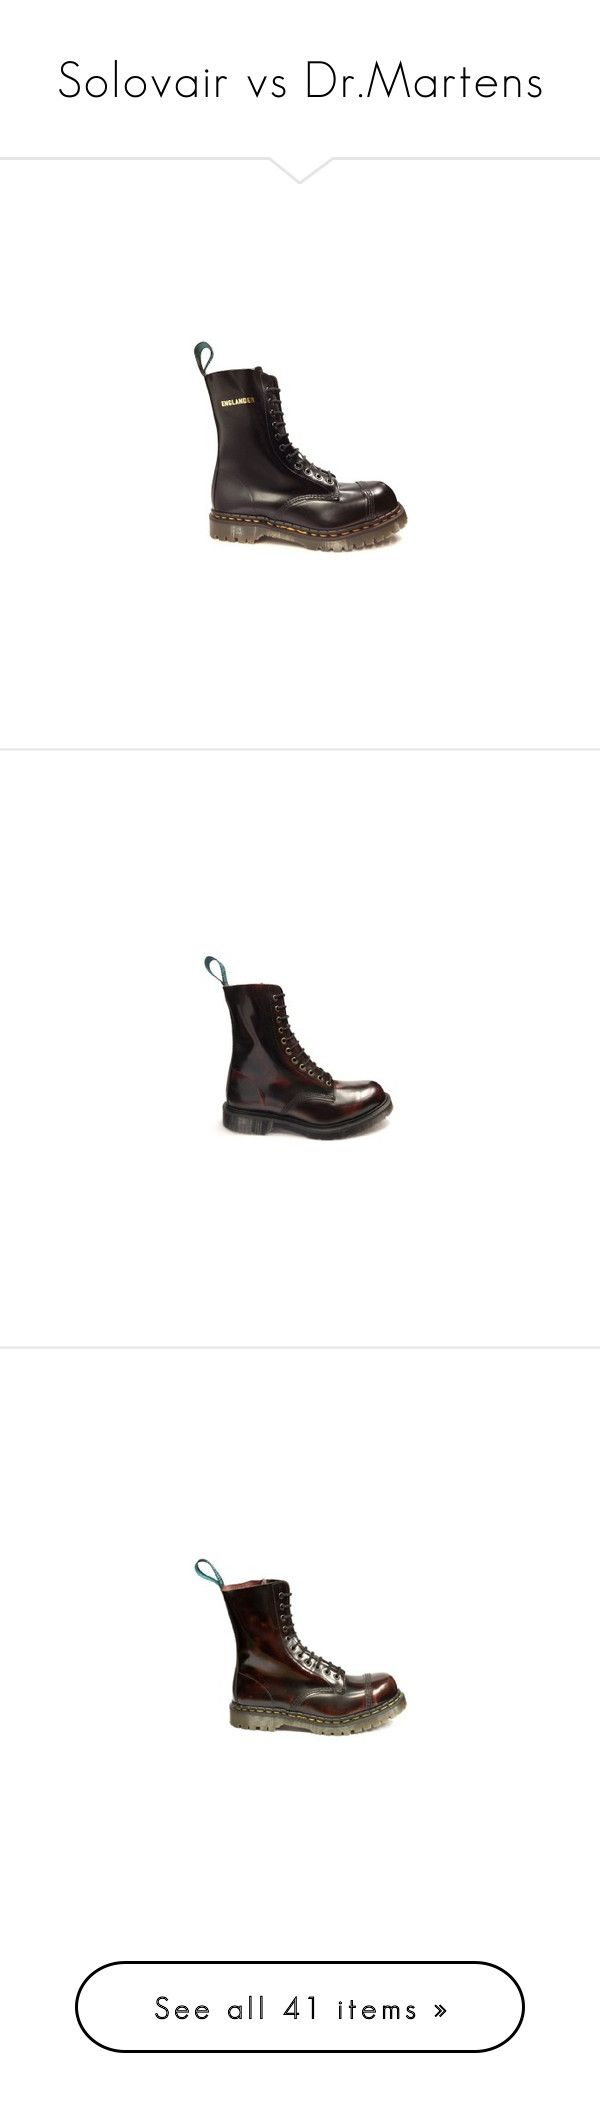 """Solovair vs Dr.Martens"" by lorika-borika on Polyvore featuring shoes, boots, safety toe caps, black shoes, real leather boots, steel toe cap boots, black leather shoes, eyelets shoes, burgundy leather shoes и genuine leather boots"